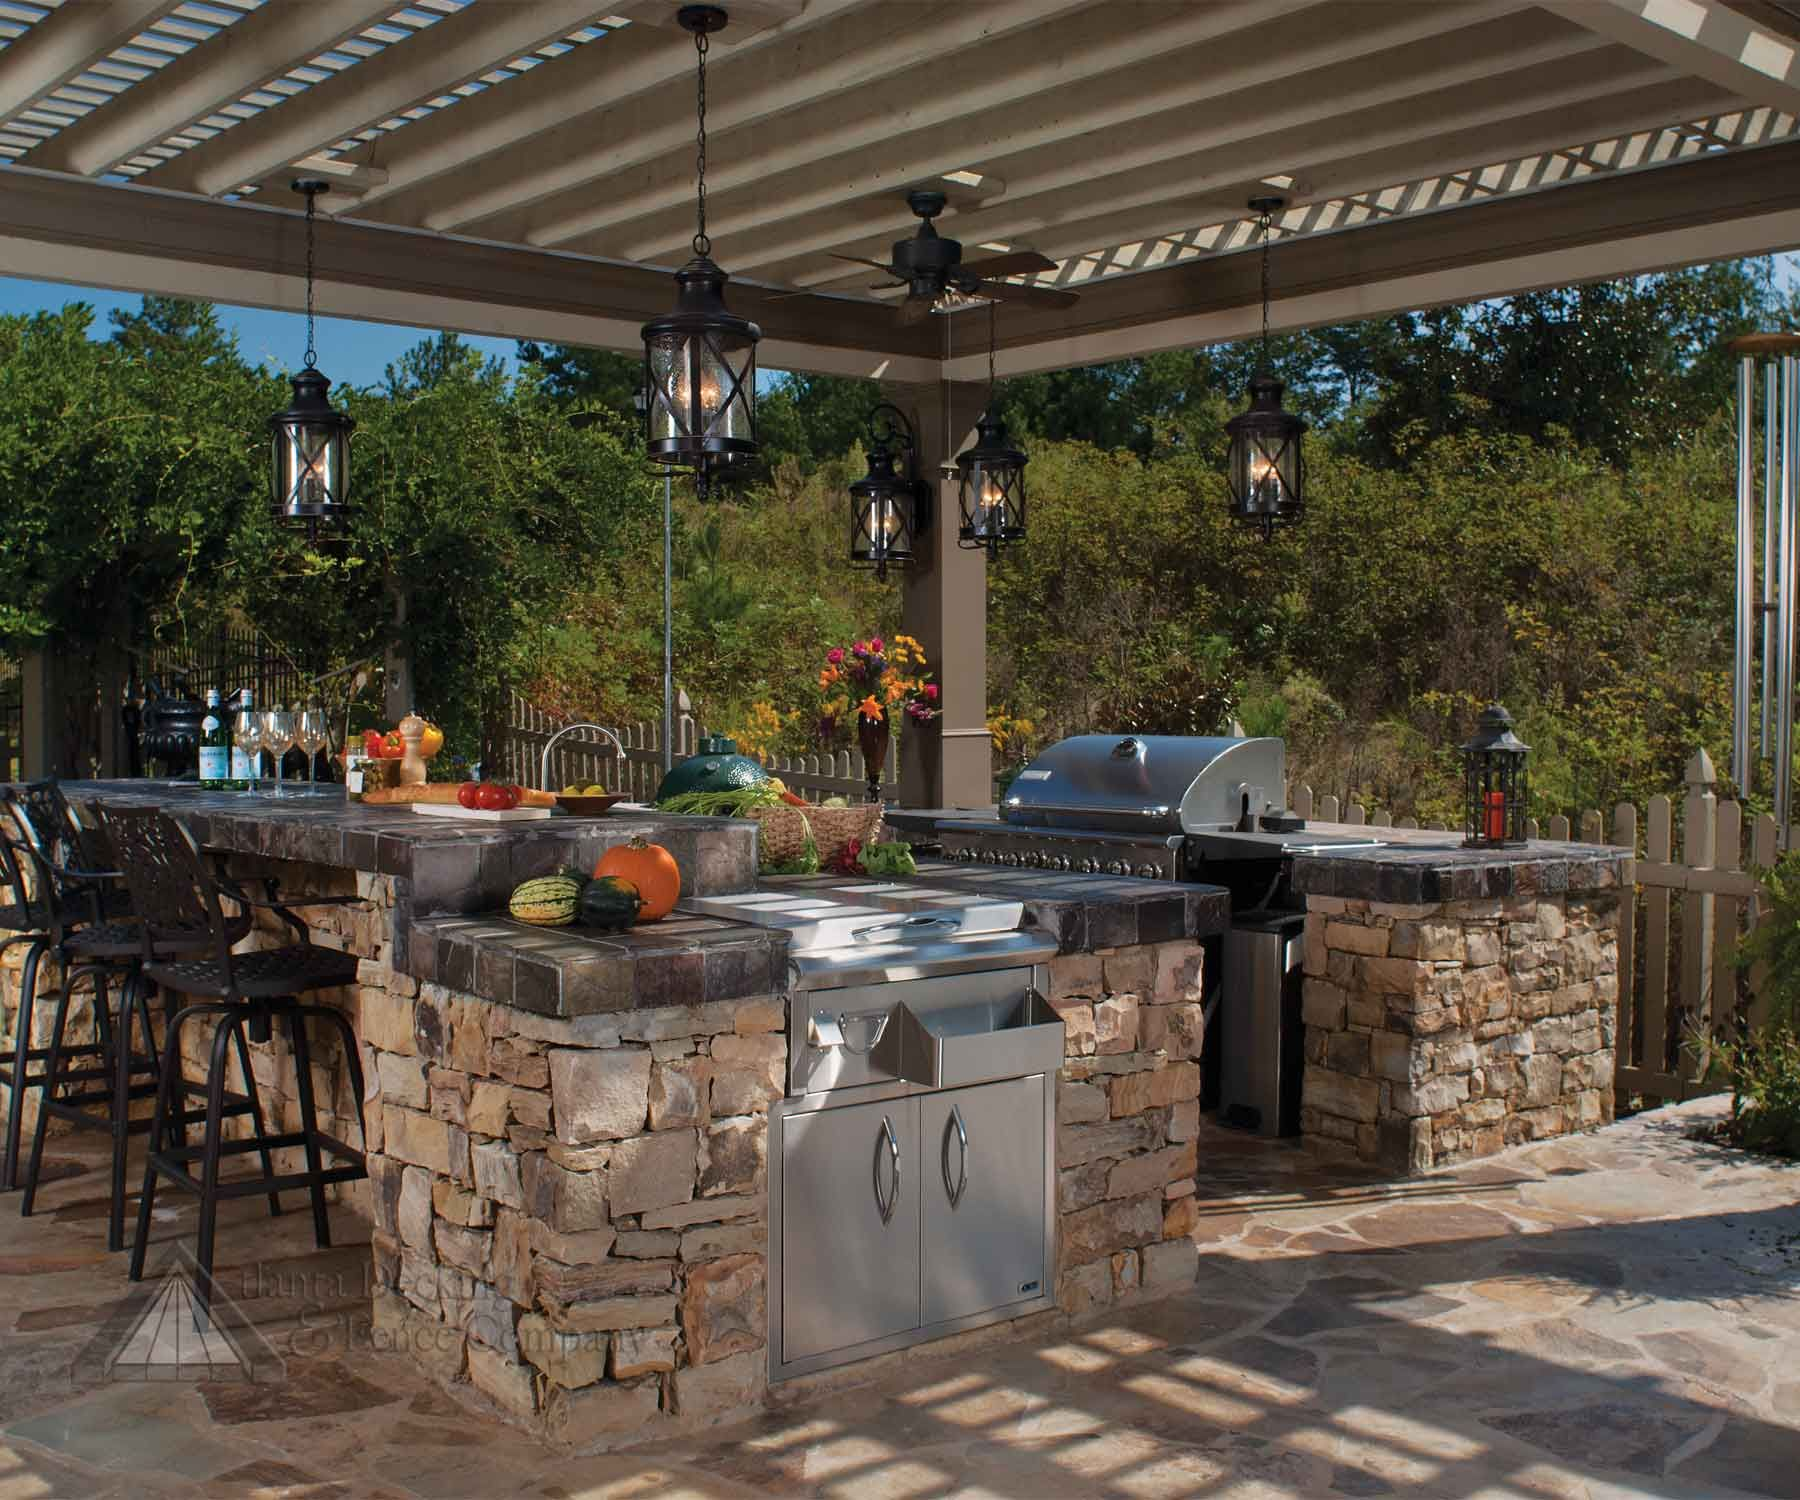 Outdoor Kitchen Cupboards: Amazing Outdoor Kitchens Part 3